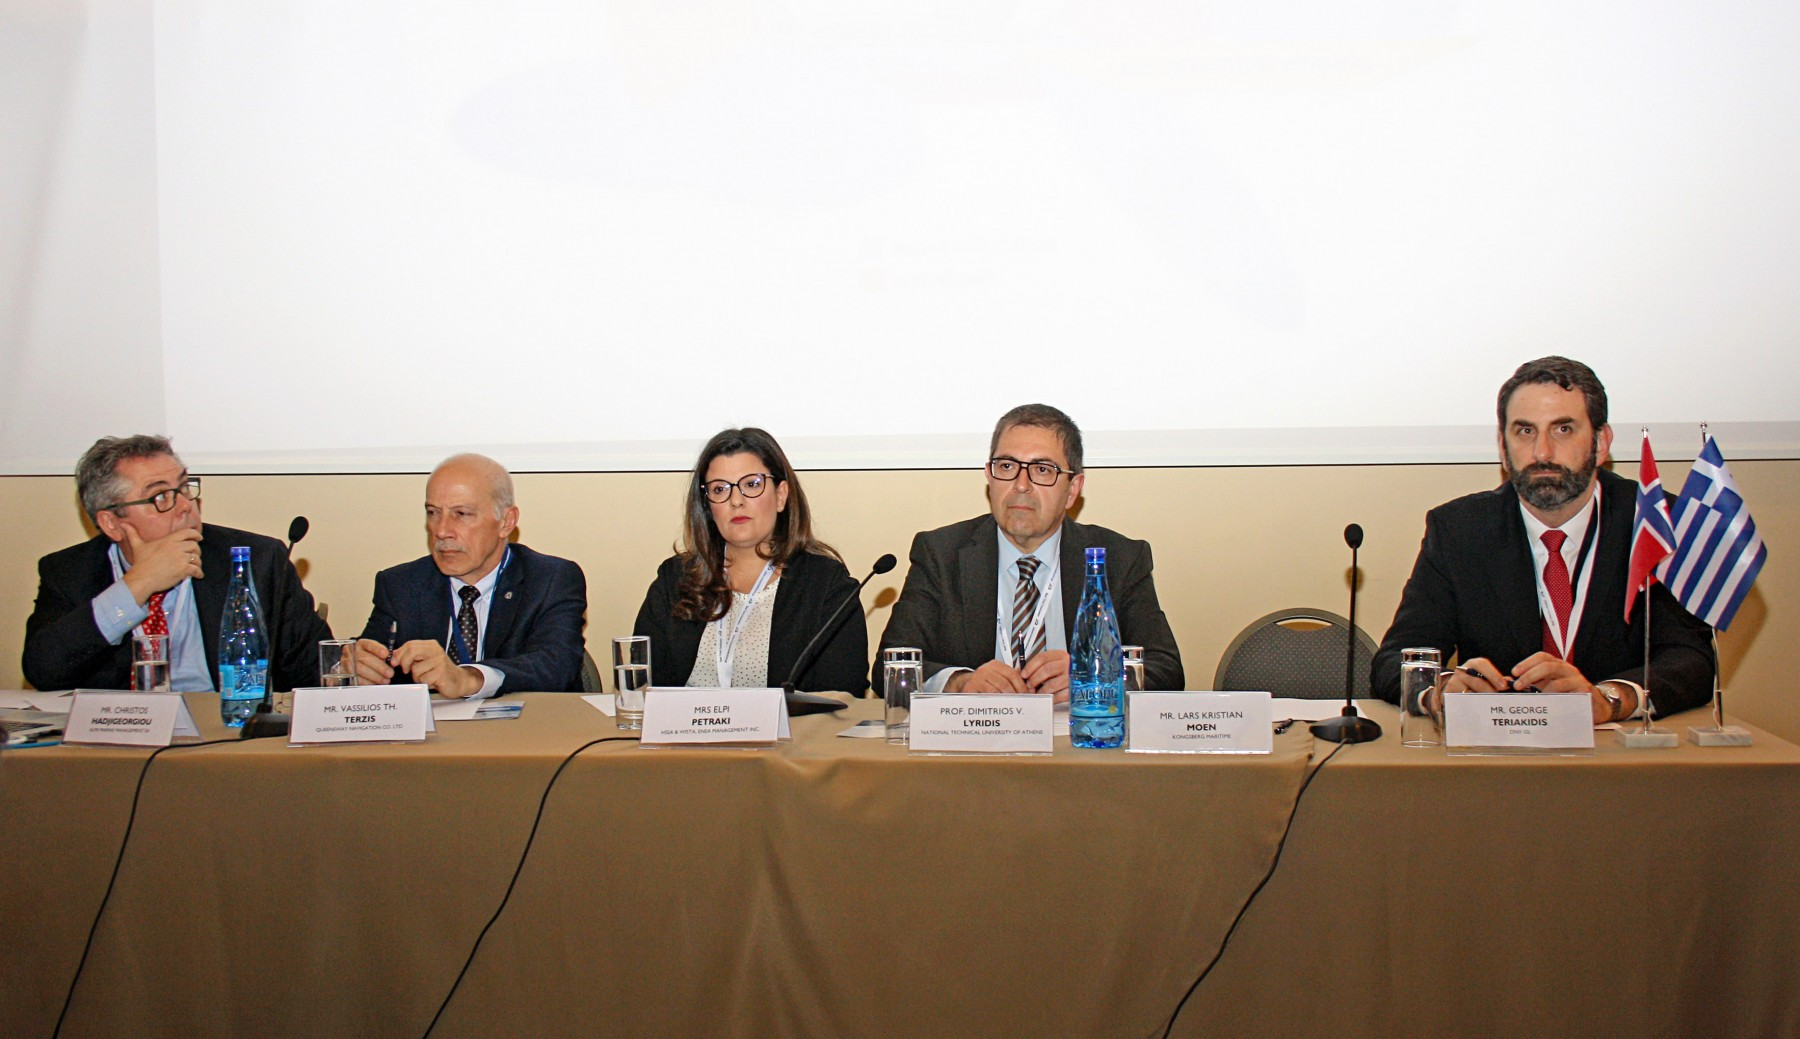 "Snapshot of the 1st Panel, on the topic of ""Technologies of the future: Electrification, LNG Fuel and Beyond."" (L-R): Mr. Christos Hadjigeorgiou, Managing Director, Almi Marine Management SA., Capt. Vassilis Terzis, Managing Director of Queensway Navigation Co. Ltd., Mrs. Elpi Petraki, Vice President of HSSA & WISTA and Enea Management Inc., Dr. Dimitrios V. Lyridis, Associate Professor at the School of Naval Architecture, National Technical University of Athens, Mr. George Teriakidis, Regional Business Development Manager, DNV GL"